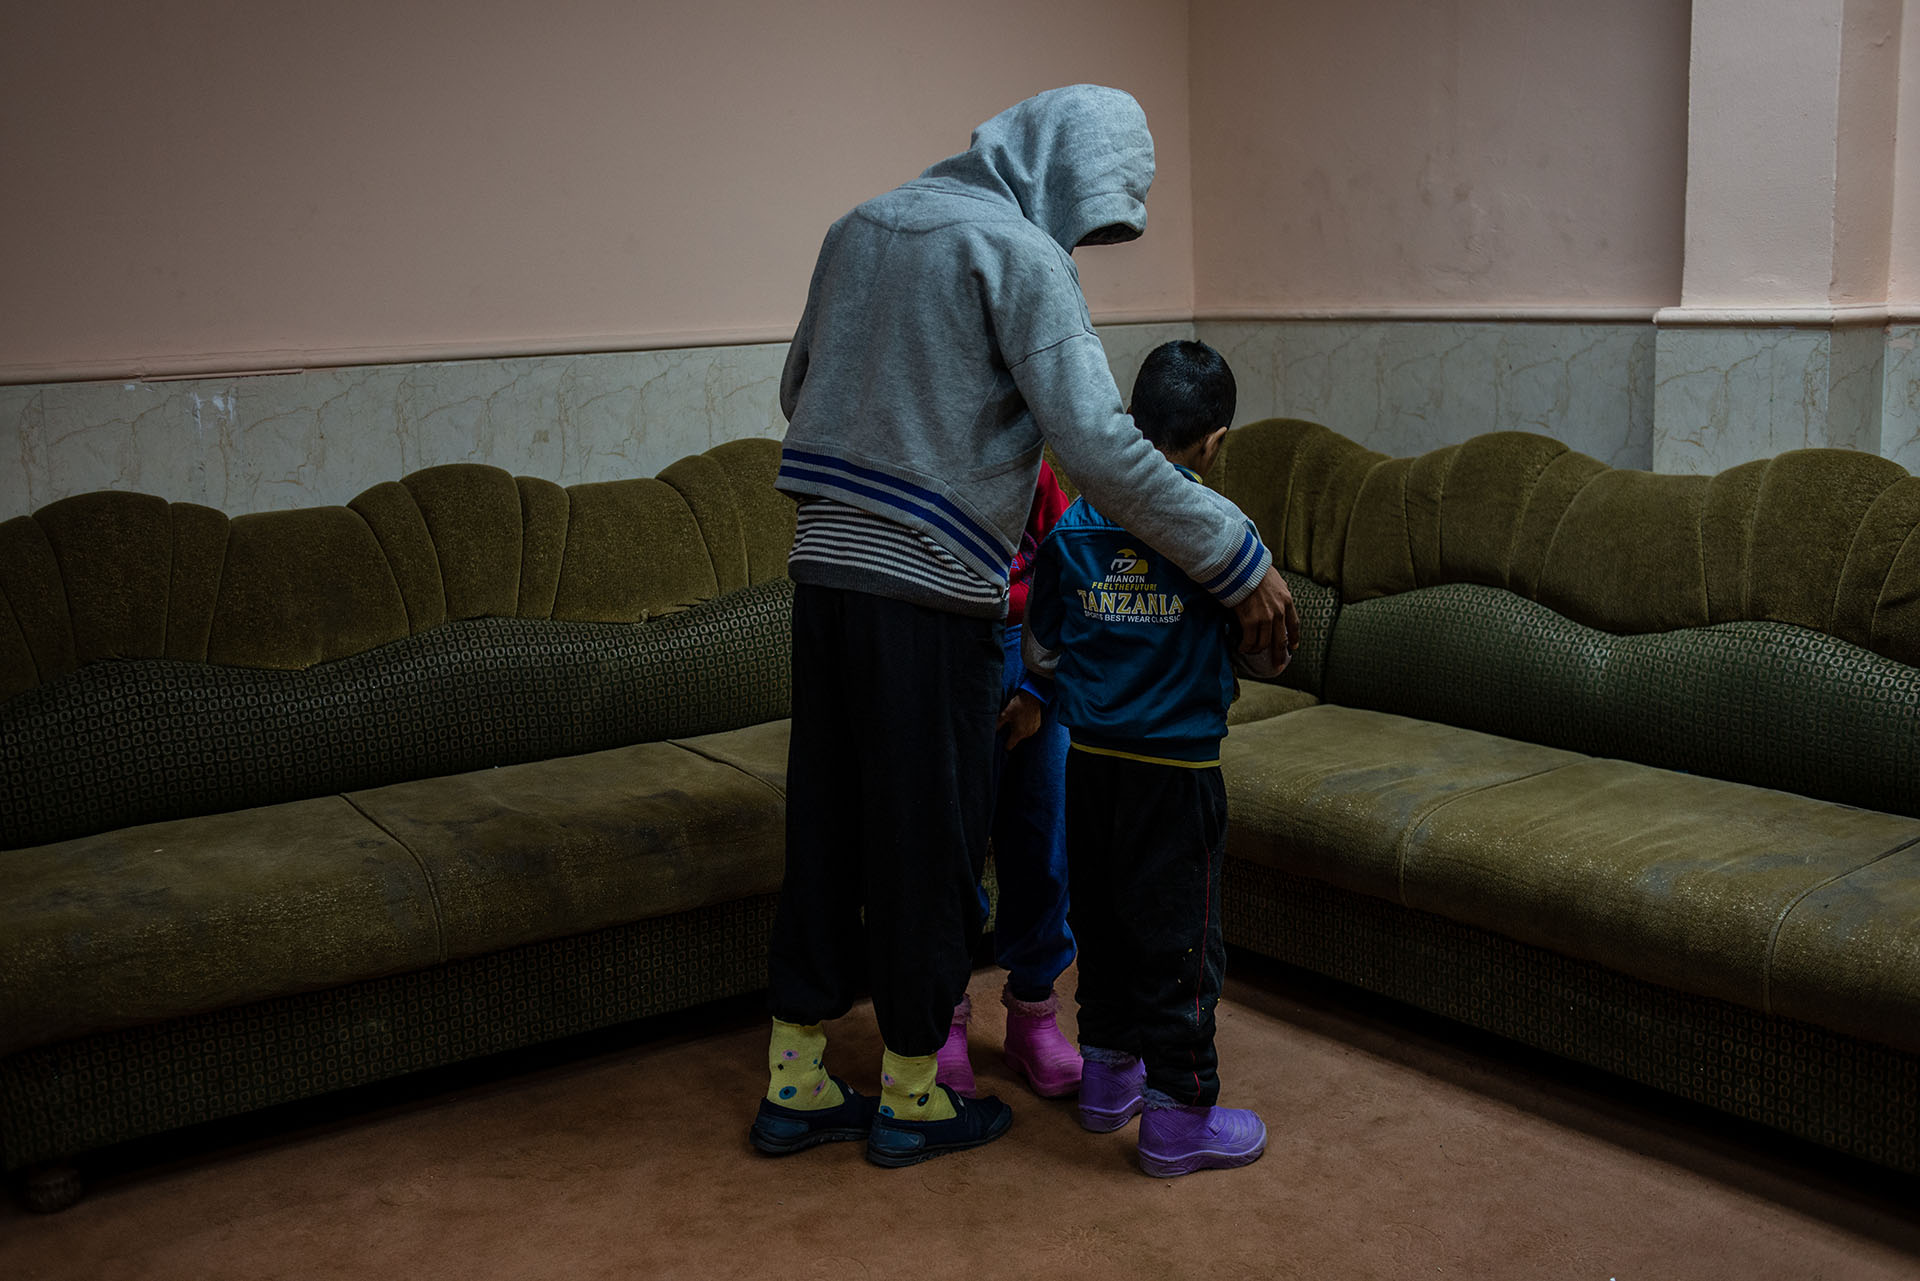 Two disabled boys, found wandering around playground city alone, are shielded by an older resident at the Mosul orphanage. (Alex Potter/GroundTruth)